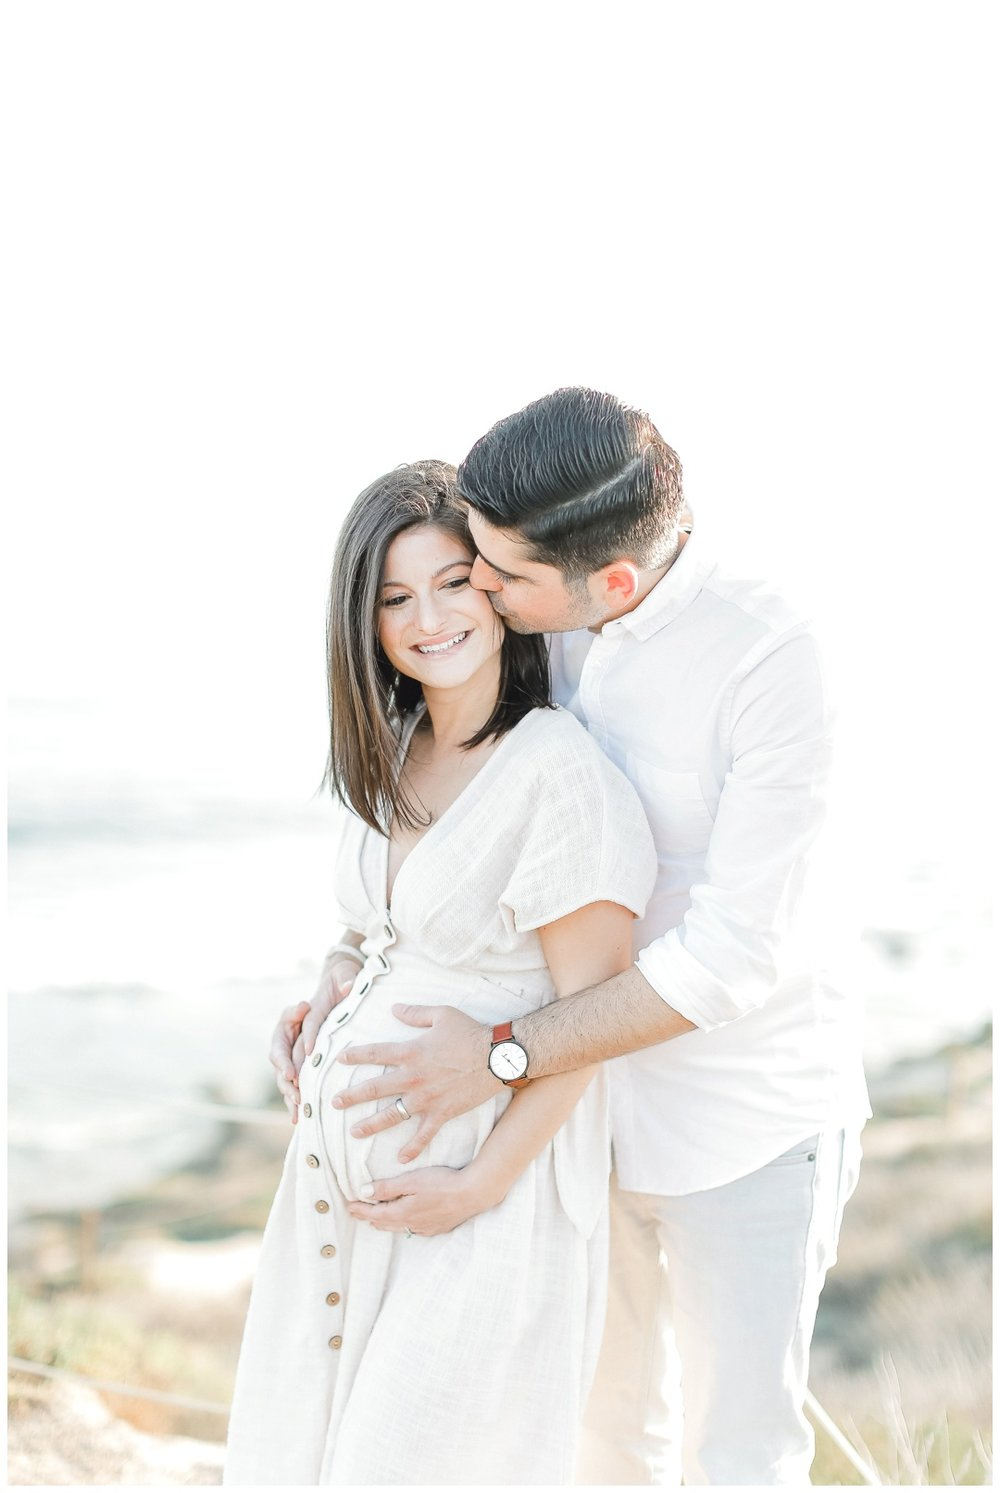 Crystal-Cove-State-Beach-Maternity-Session-Crystal-Cove-Newport-Beach-Maternity-Photographer-Crystal-Cove-Session-Cori-Kleckner-Photography-Orange-County-Maternity-Family-Photos-Session-_0906.jpg